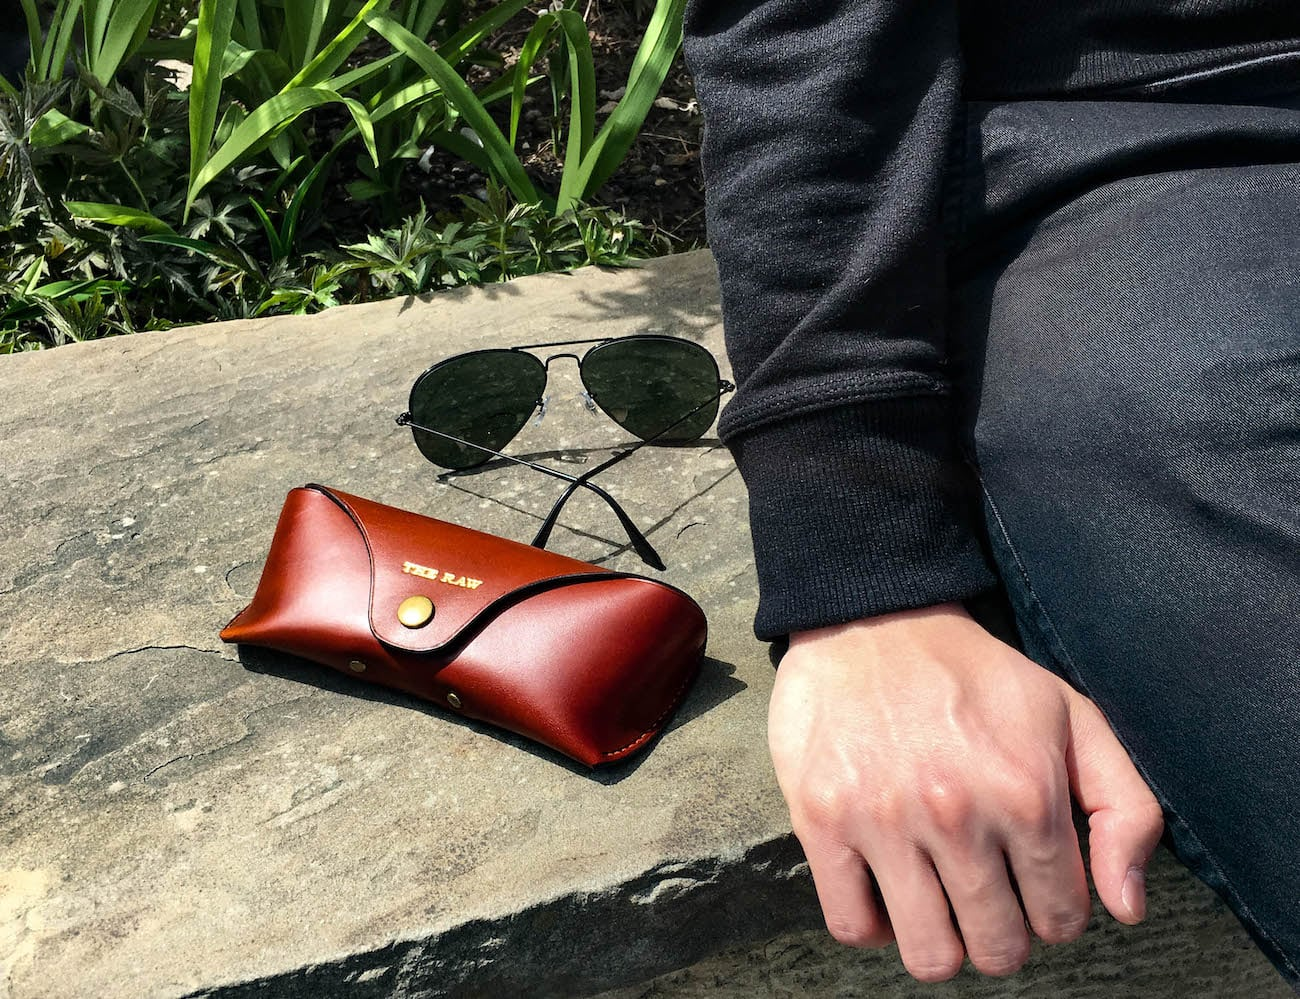 THE RAW Handcrafted Luxury Leather Goods are fashionable and durable